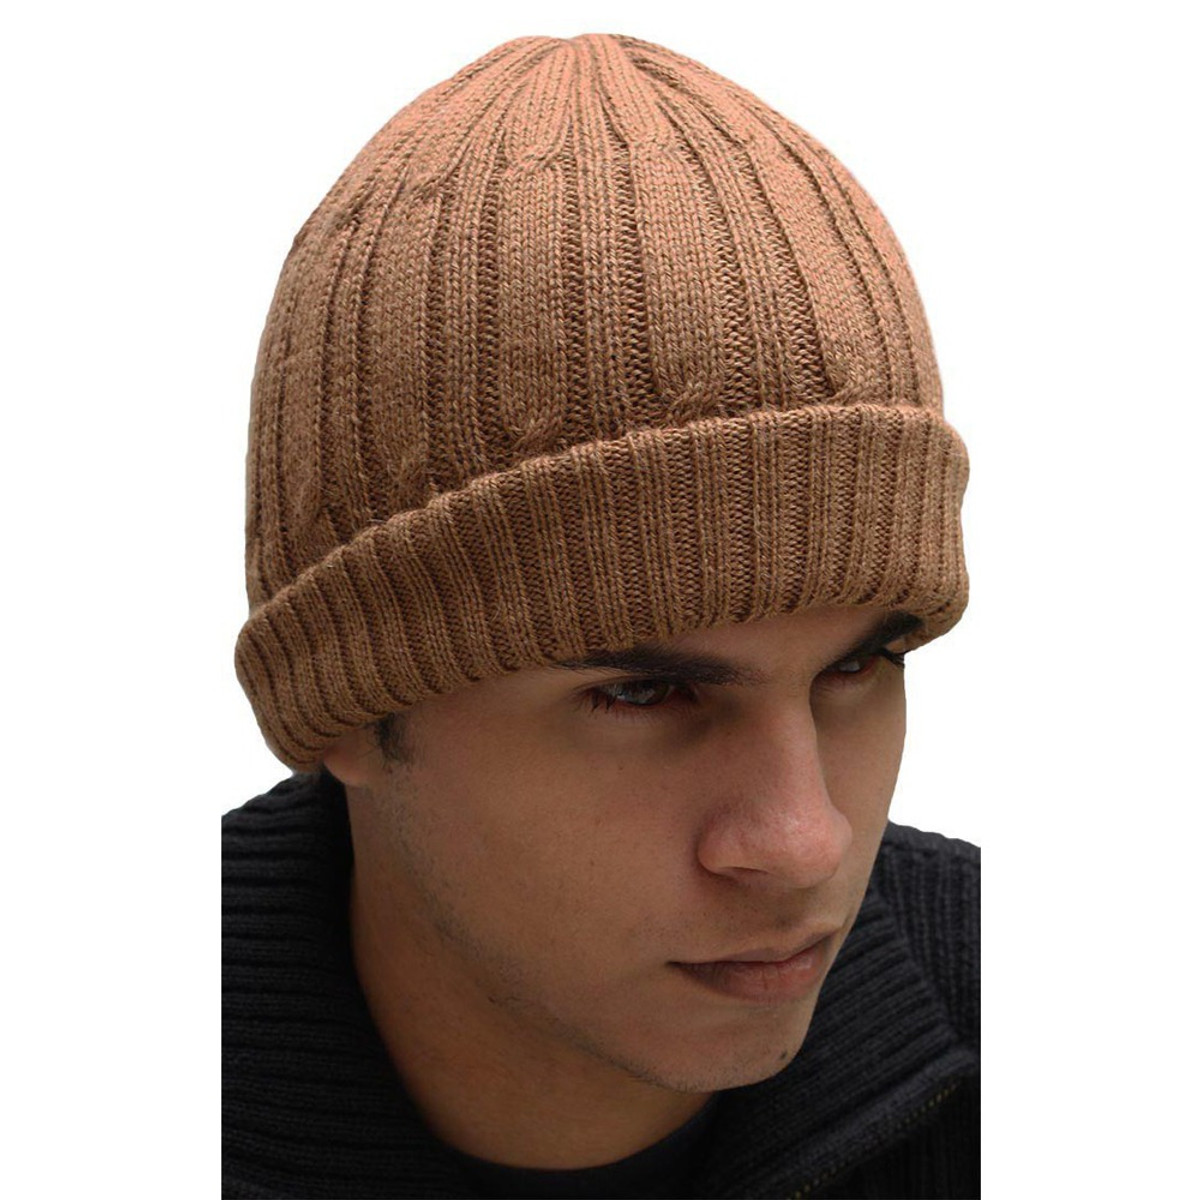 cc26d517 Superfine Double-Knitted Alpaca Wool Beanie Hat Camel Unisex One Size